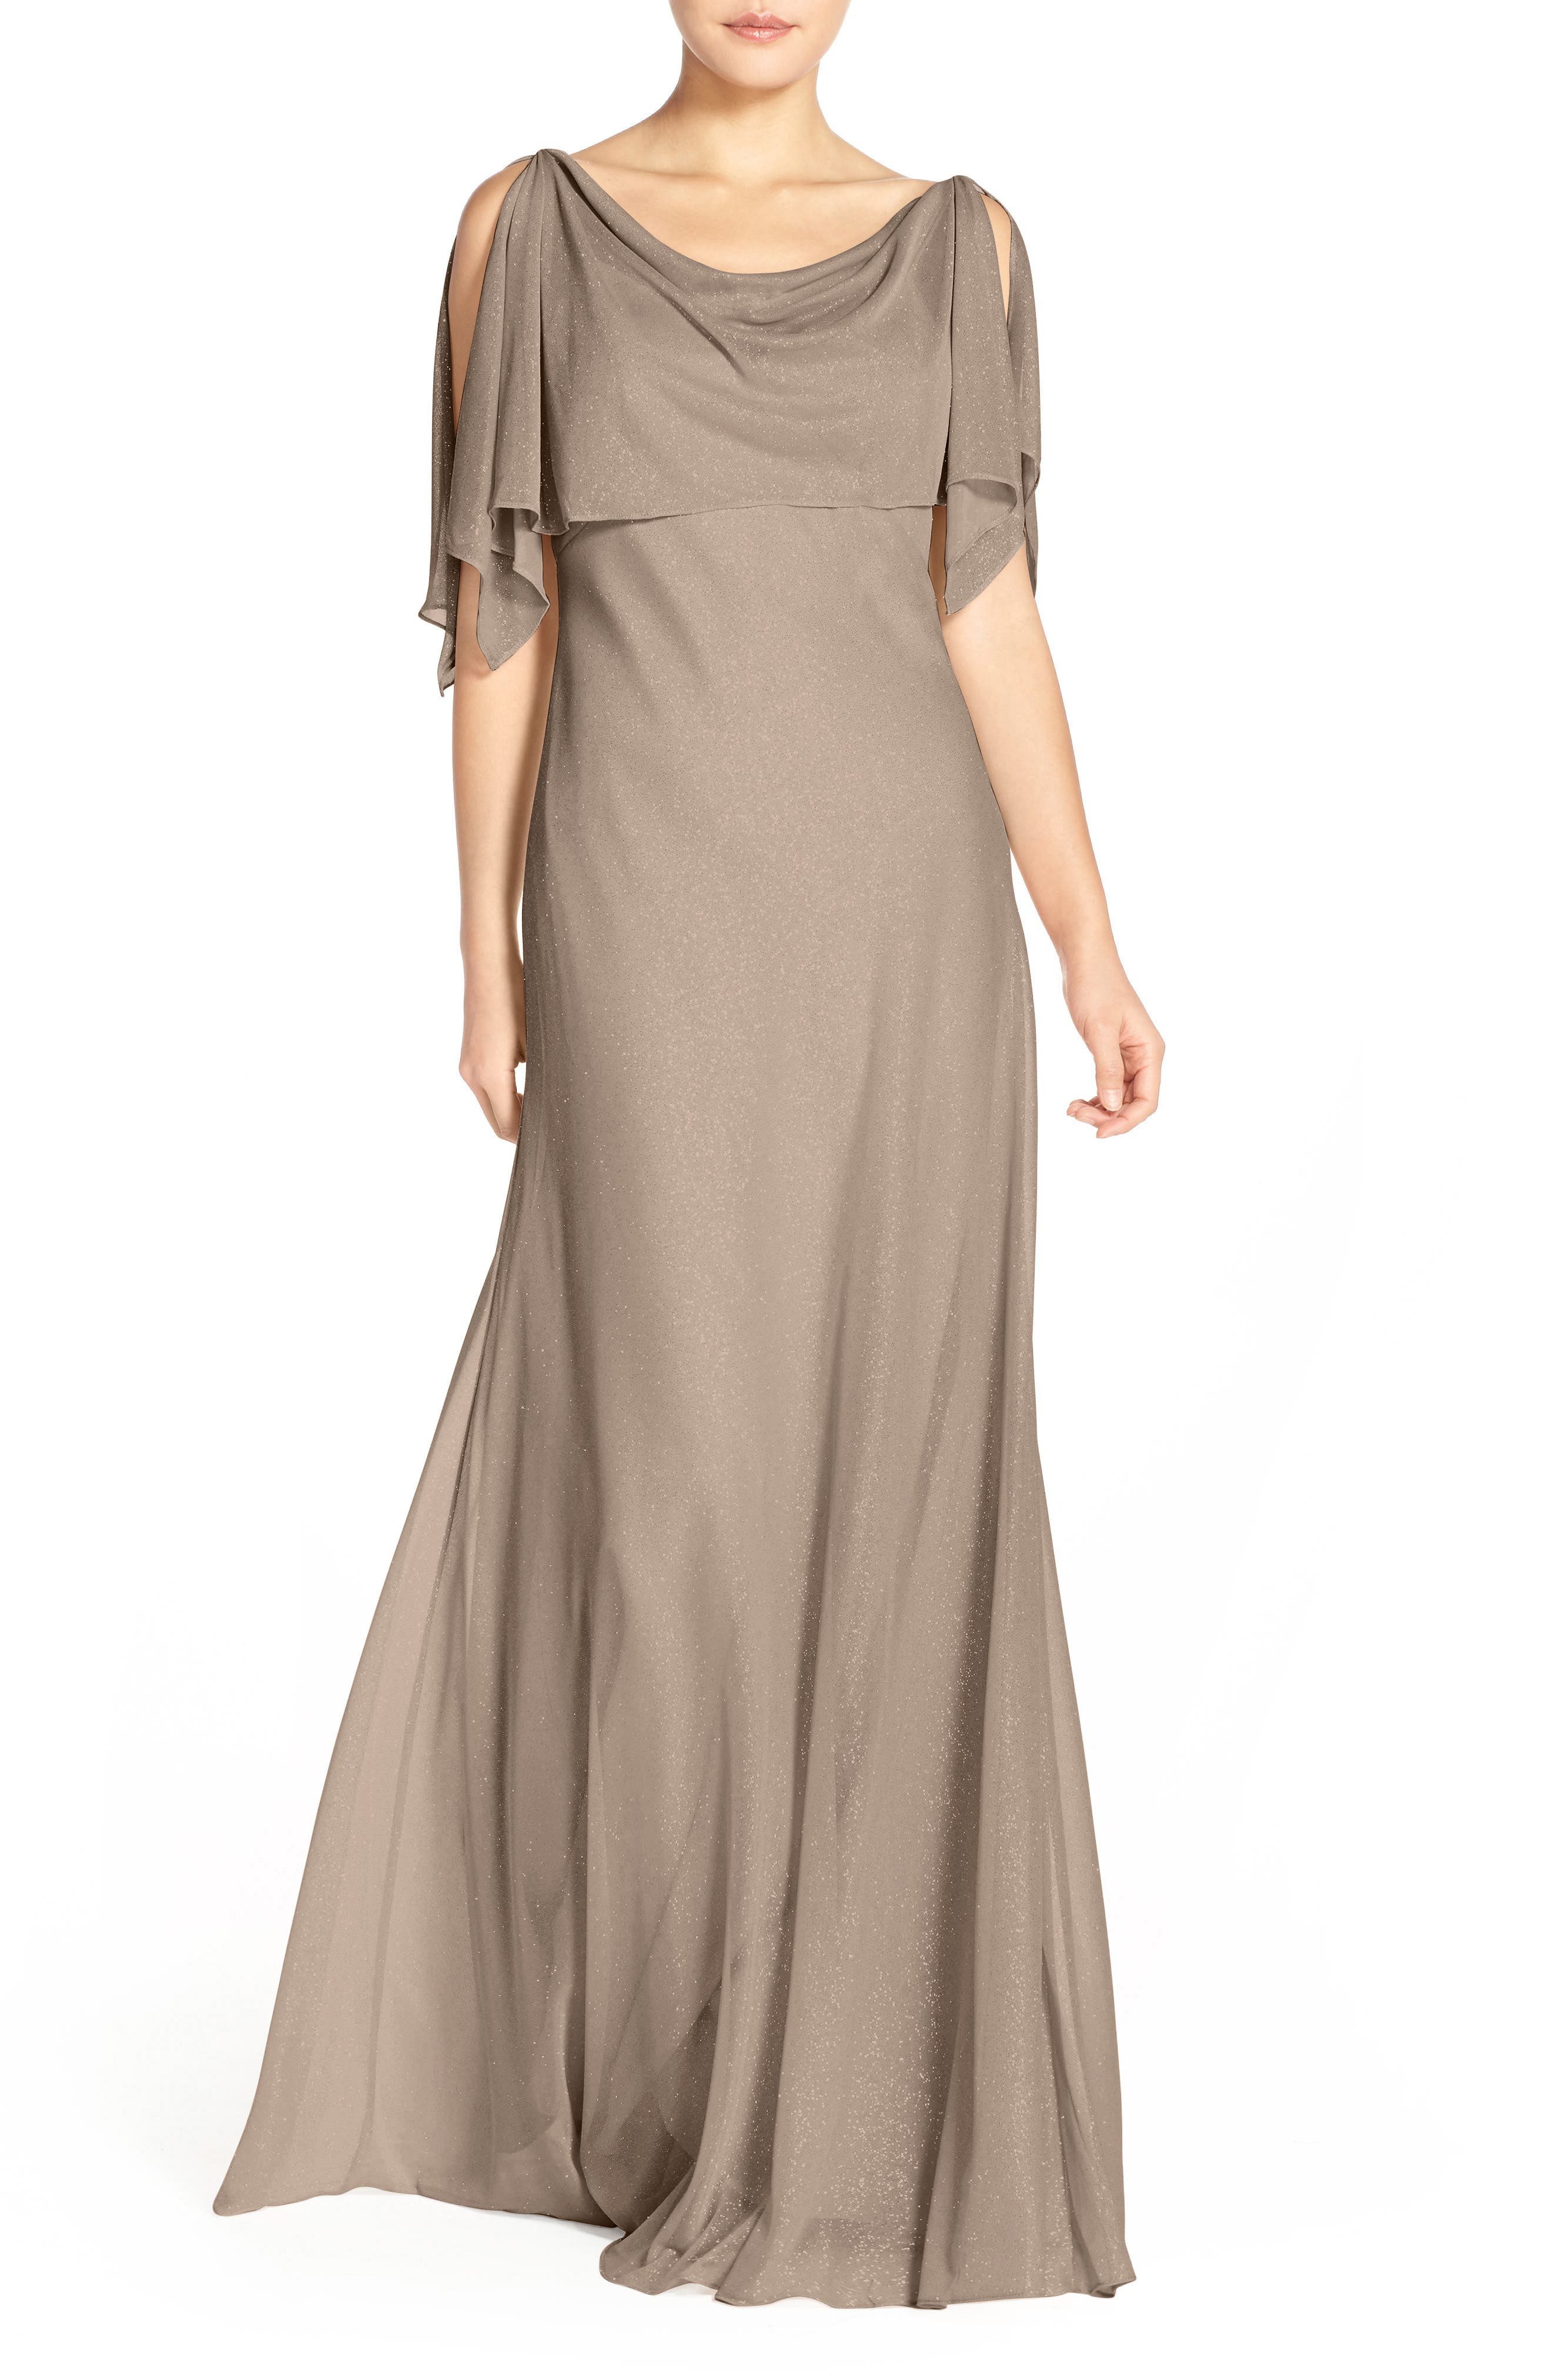 JENNY YOO, Devon Glitter Knit Gown with Detachable Capelet, Alternate thumbnail 2, color, TAUPE